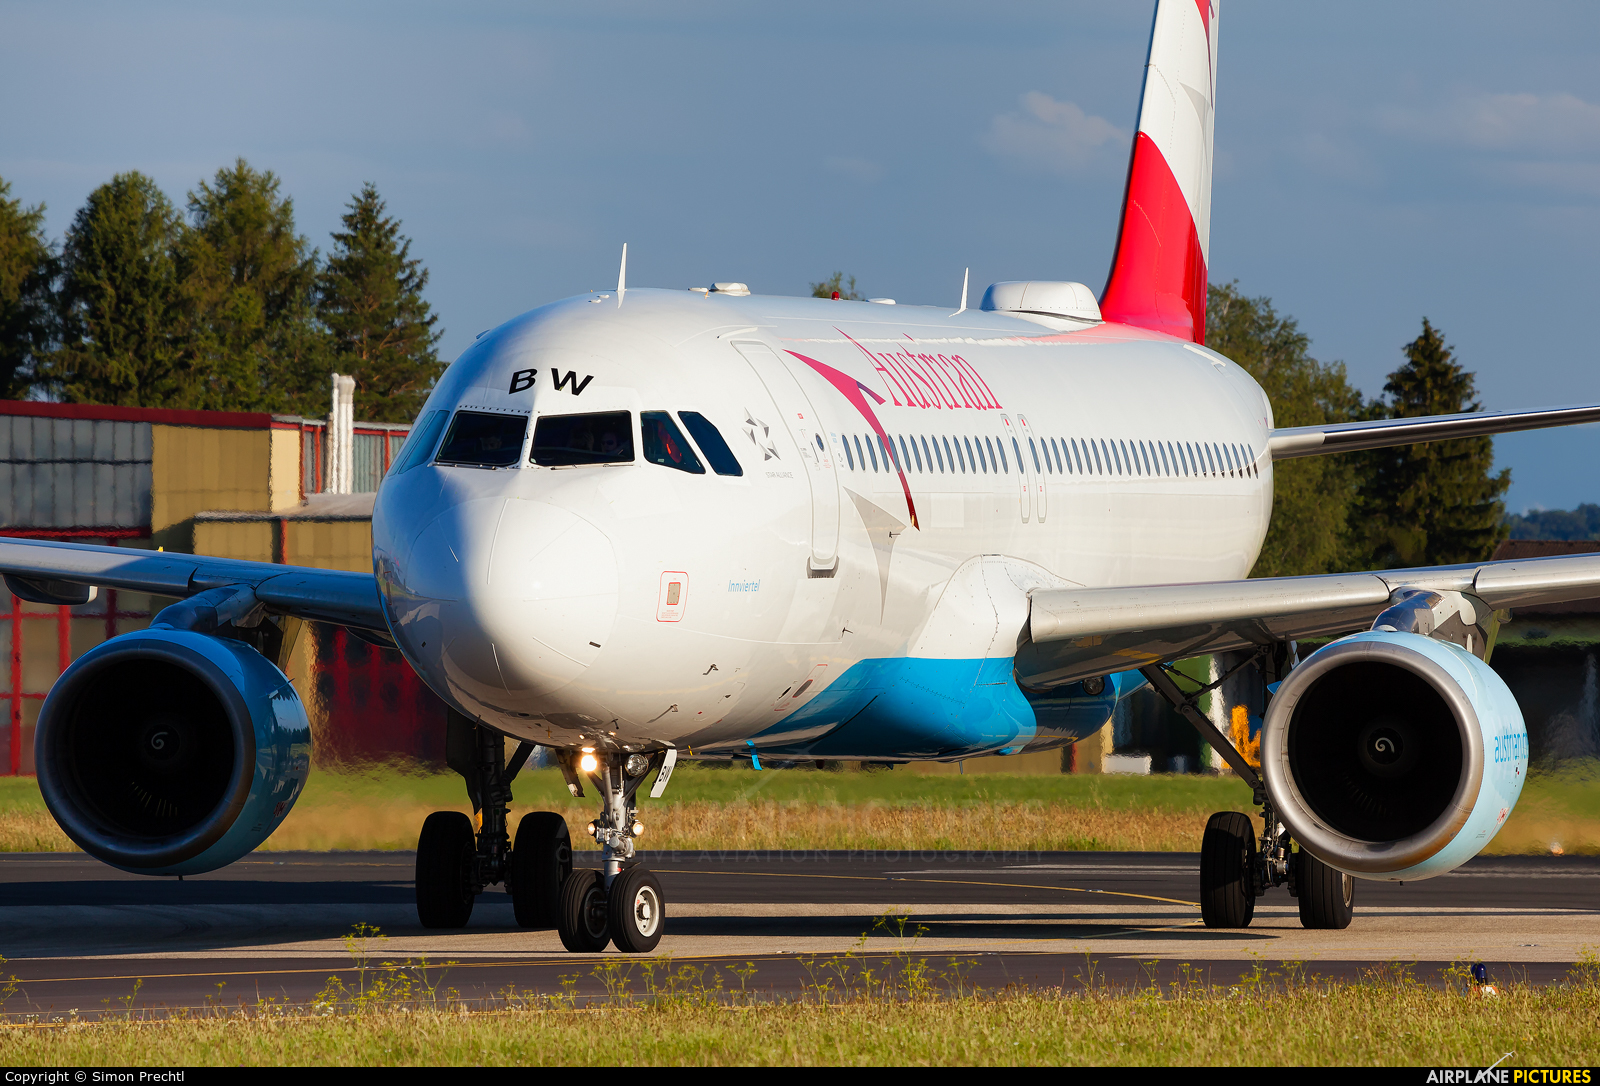 Austrian Airlines/Arrows/Tyrolean OE-LBW aircraft at Linz